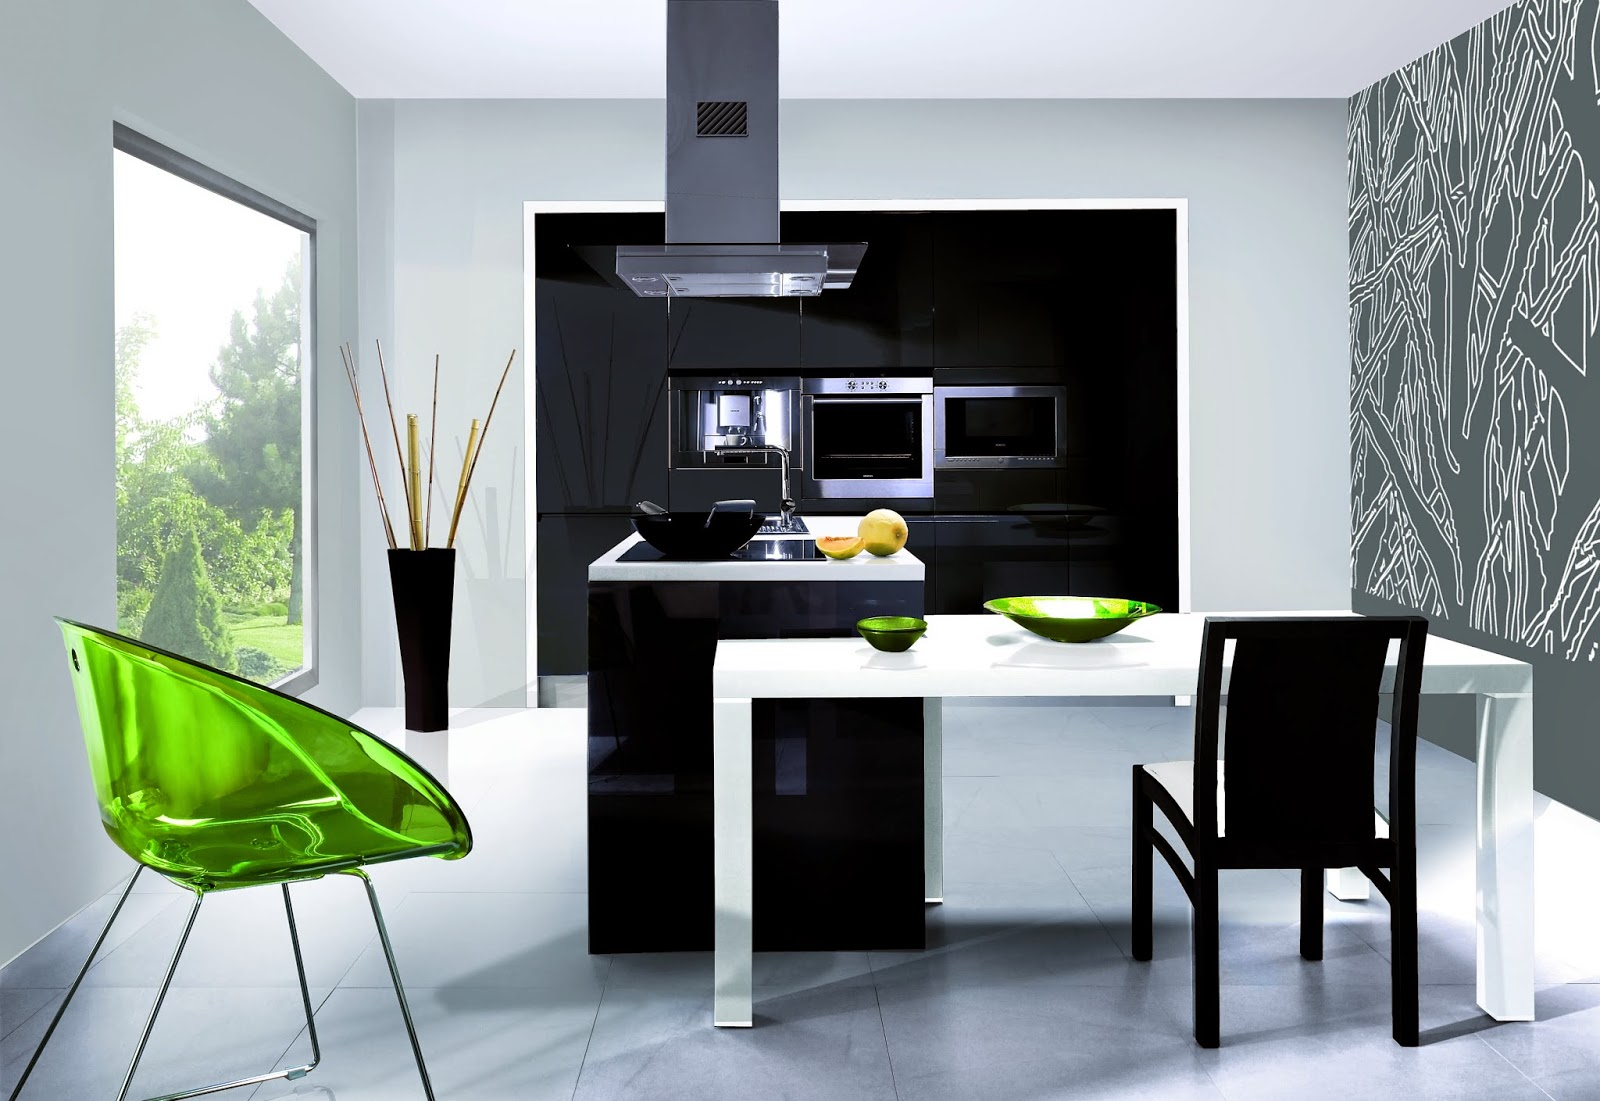 15 elegant minimalist kitchen designs with modern kitchen for Minimalist design style